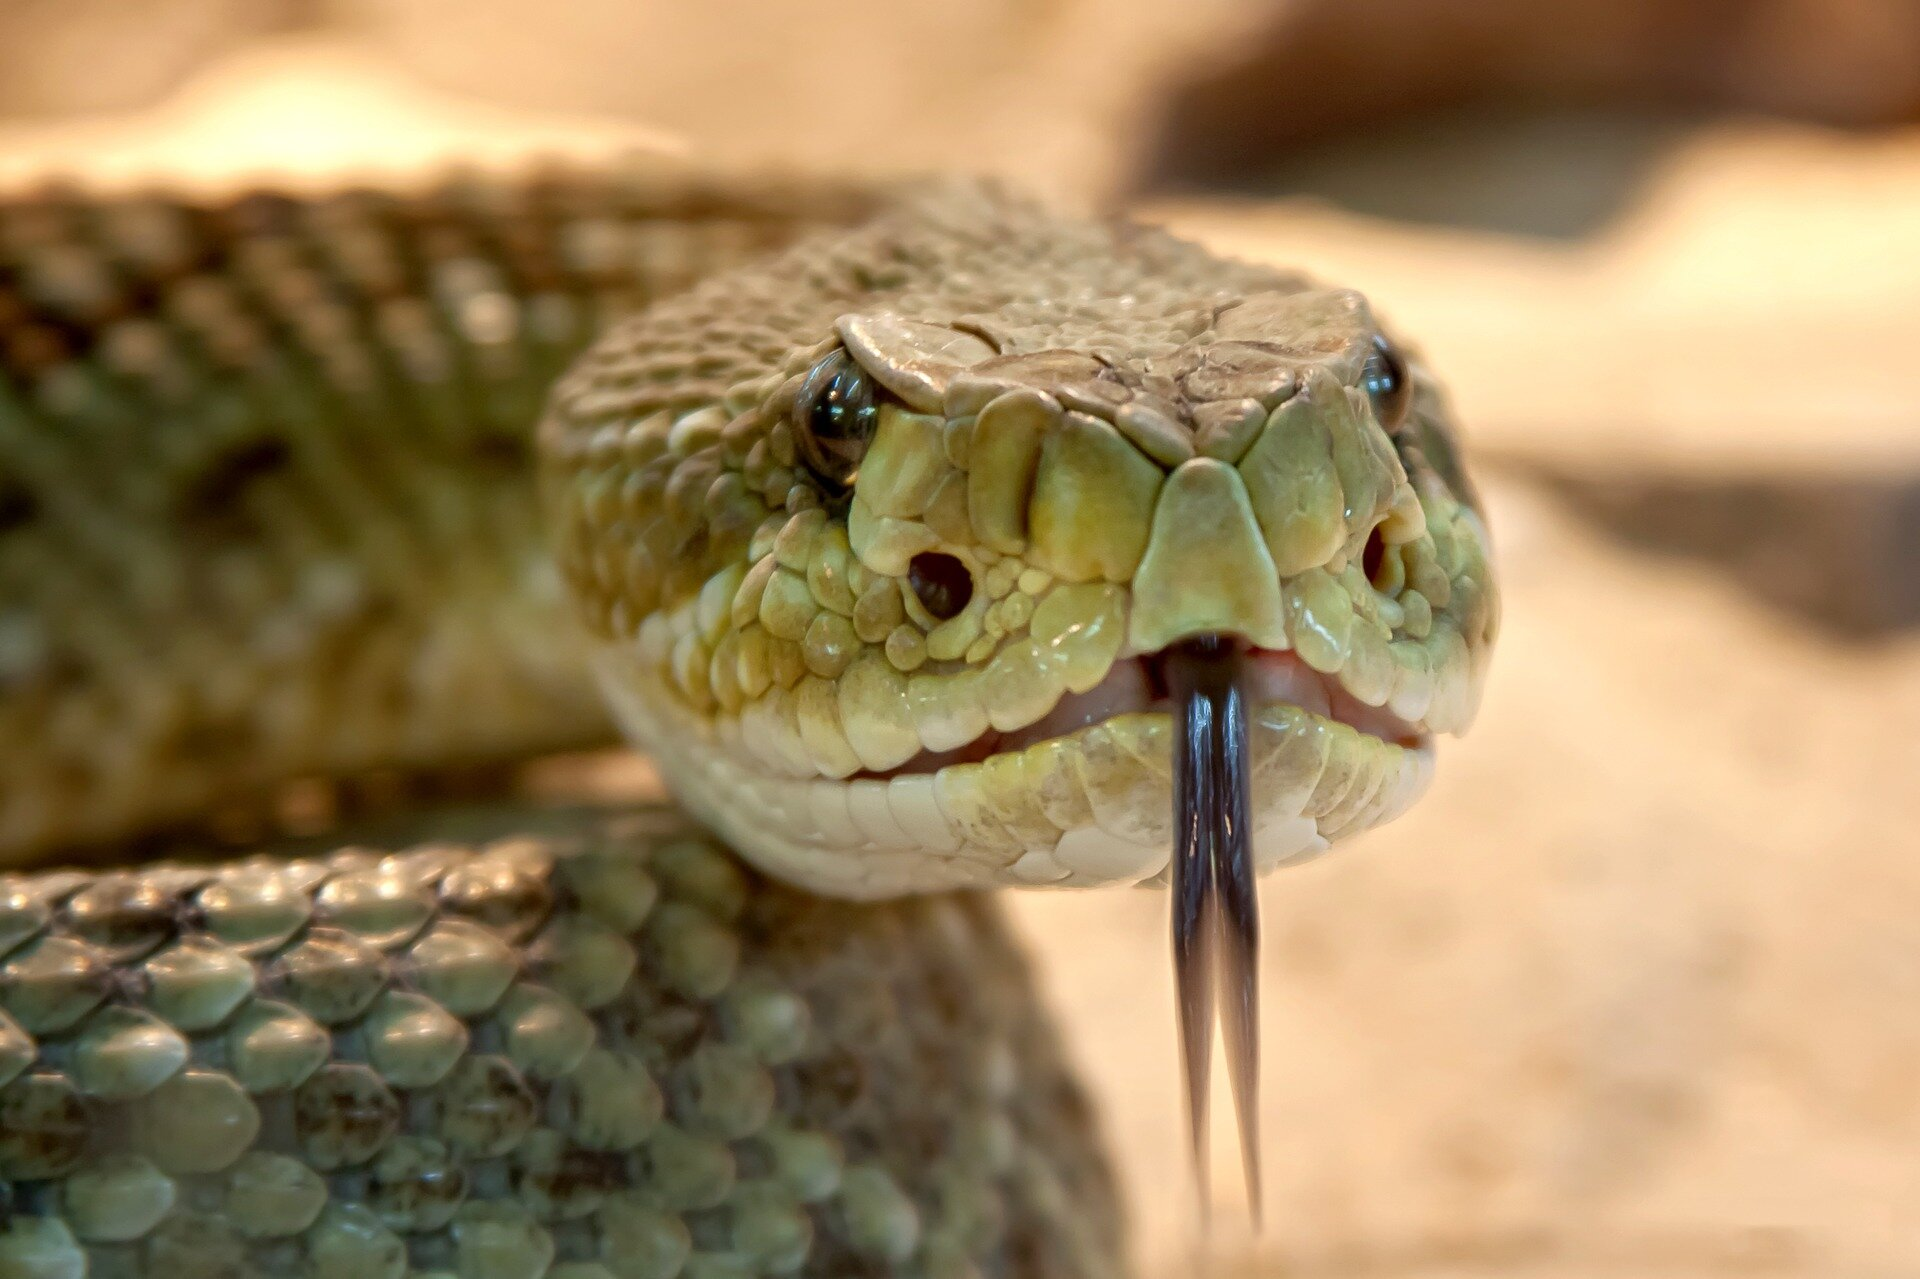 Tighten Up Law On Keeping Dangerous Snakes As Pets Demand Animal Welfare Experts